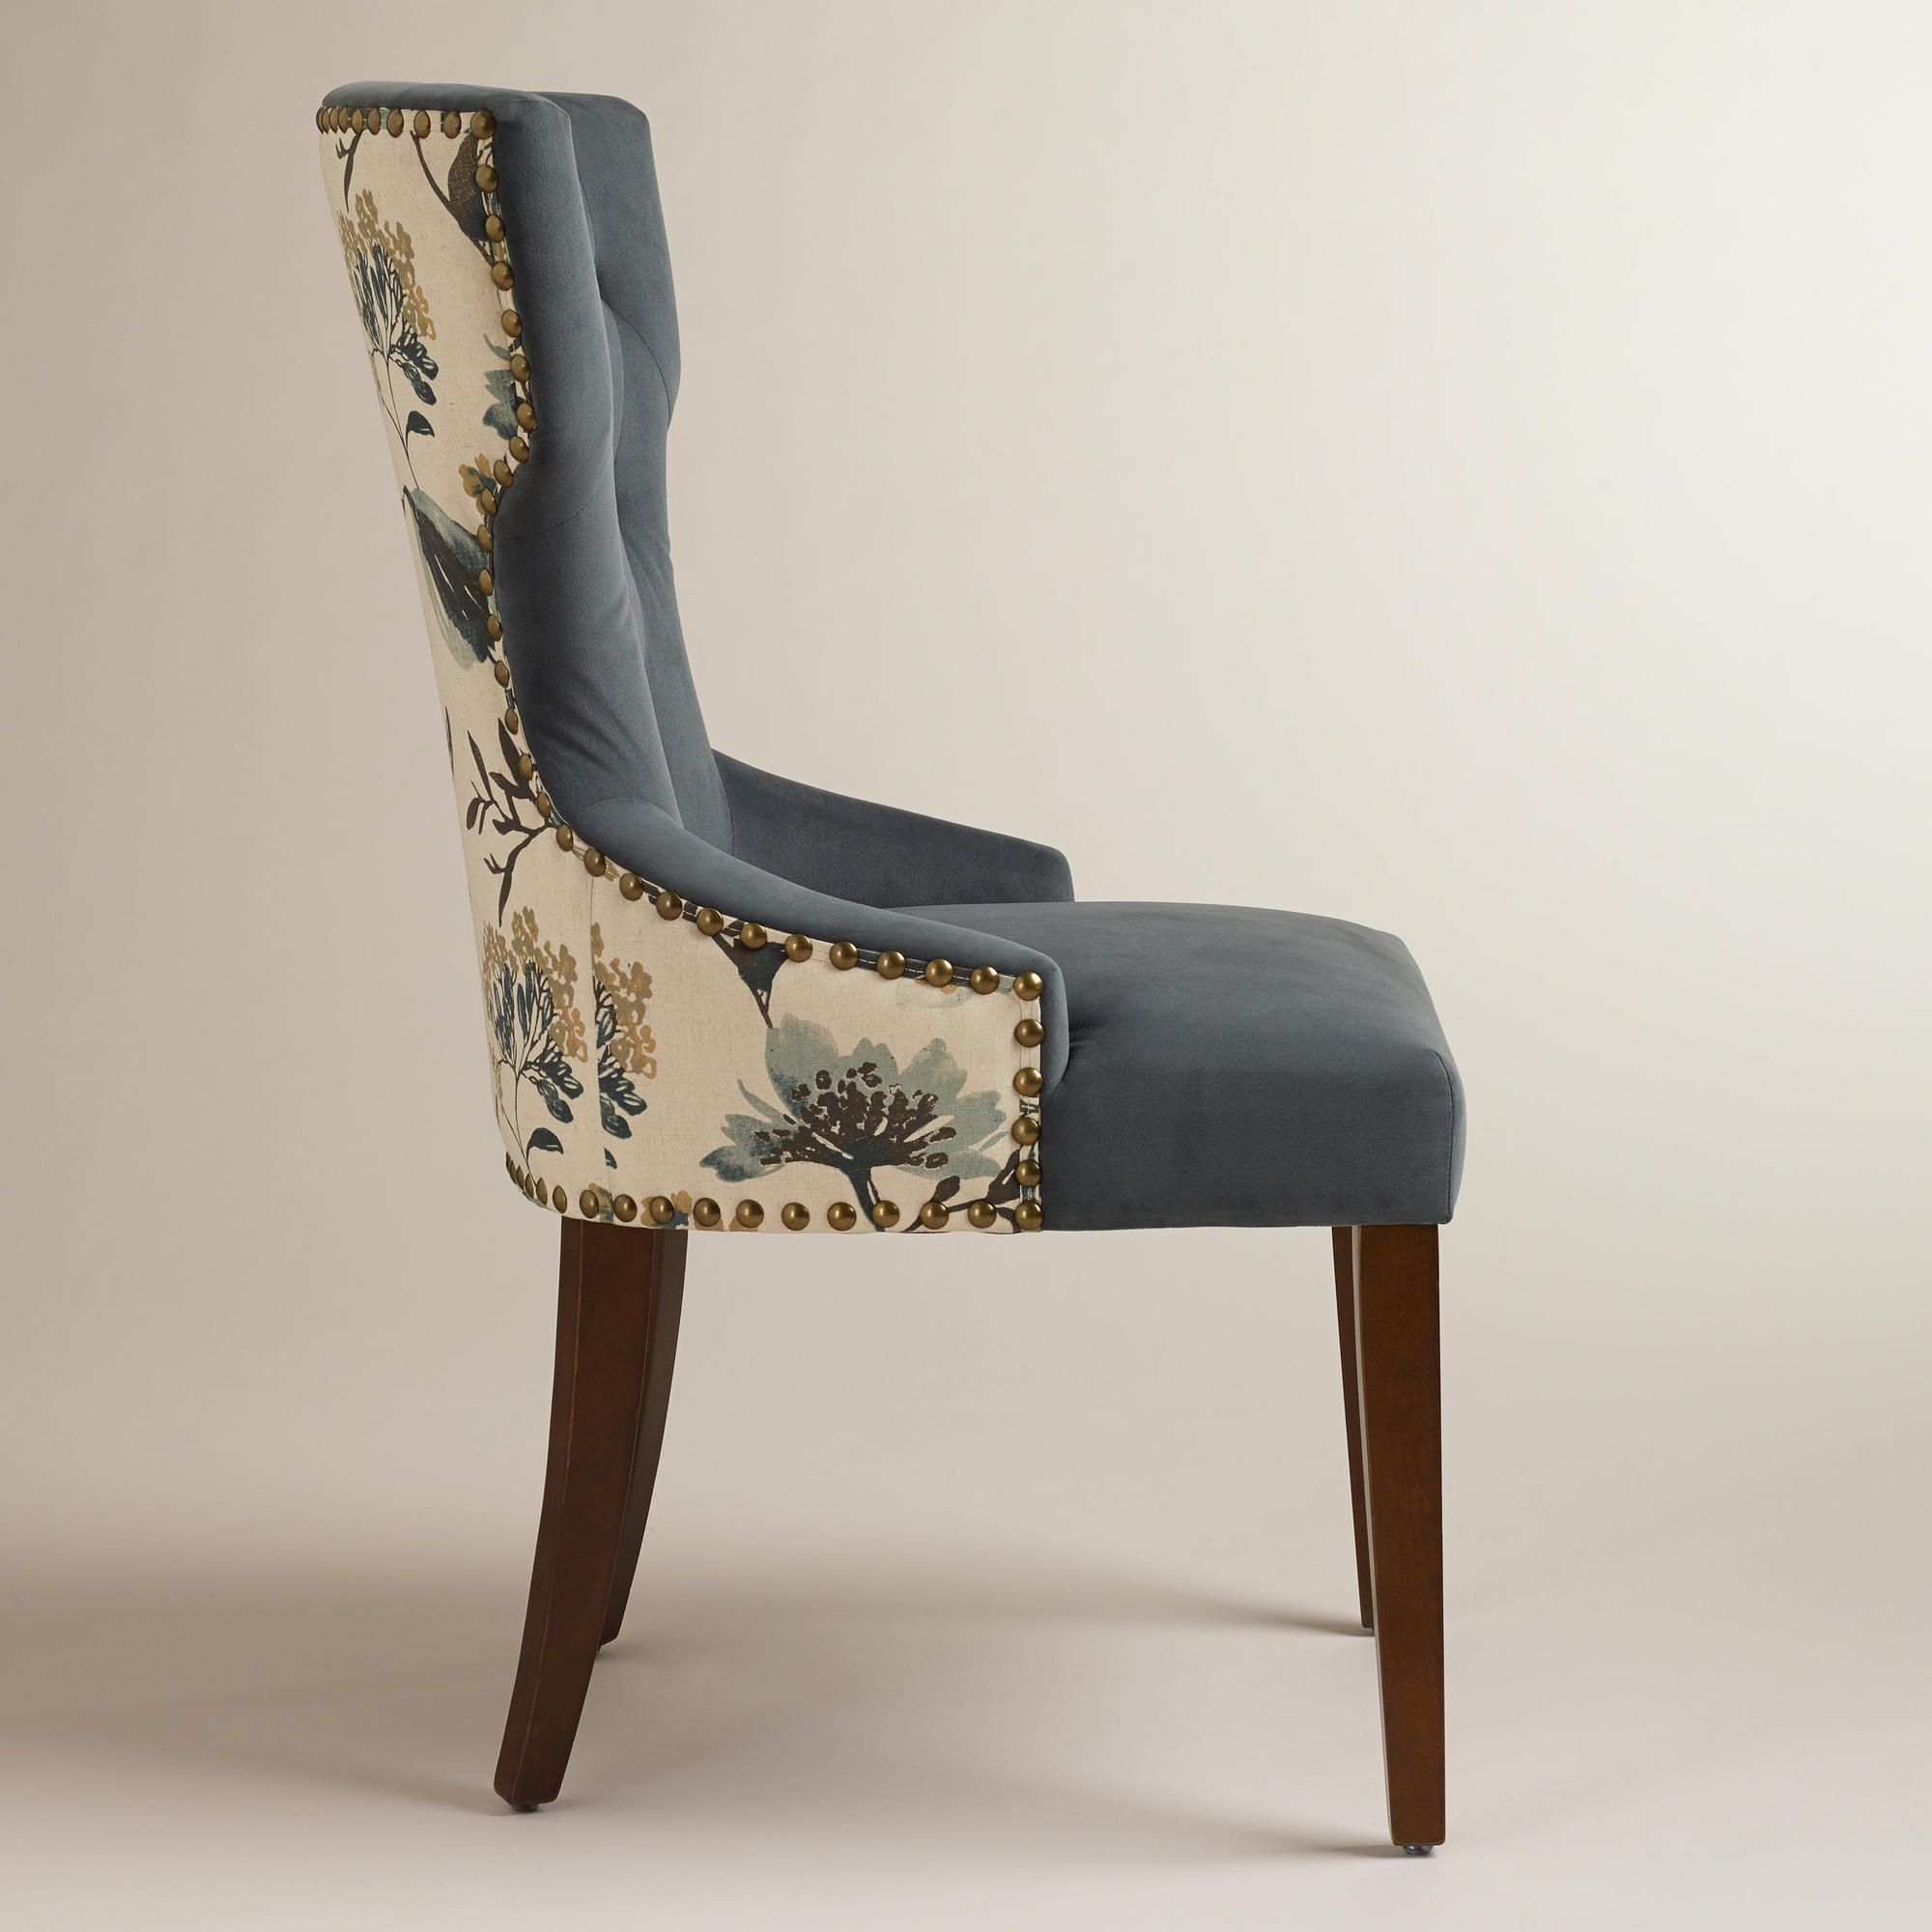 Atlantic Floral and Bird Maxine Dining Chair